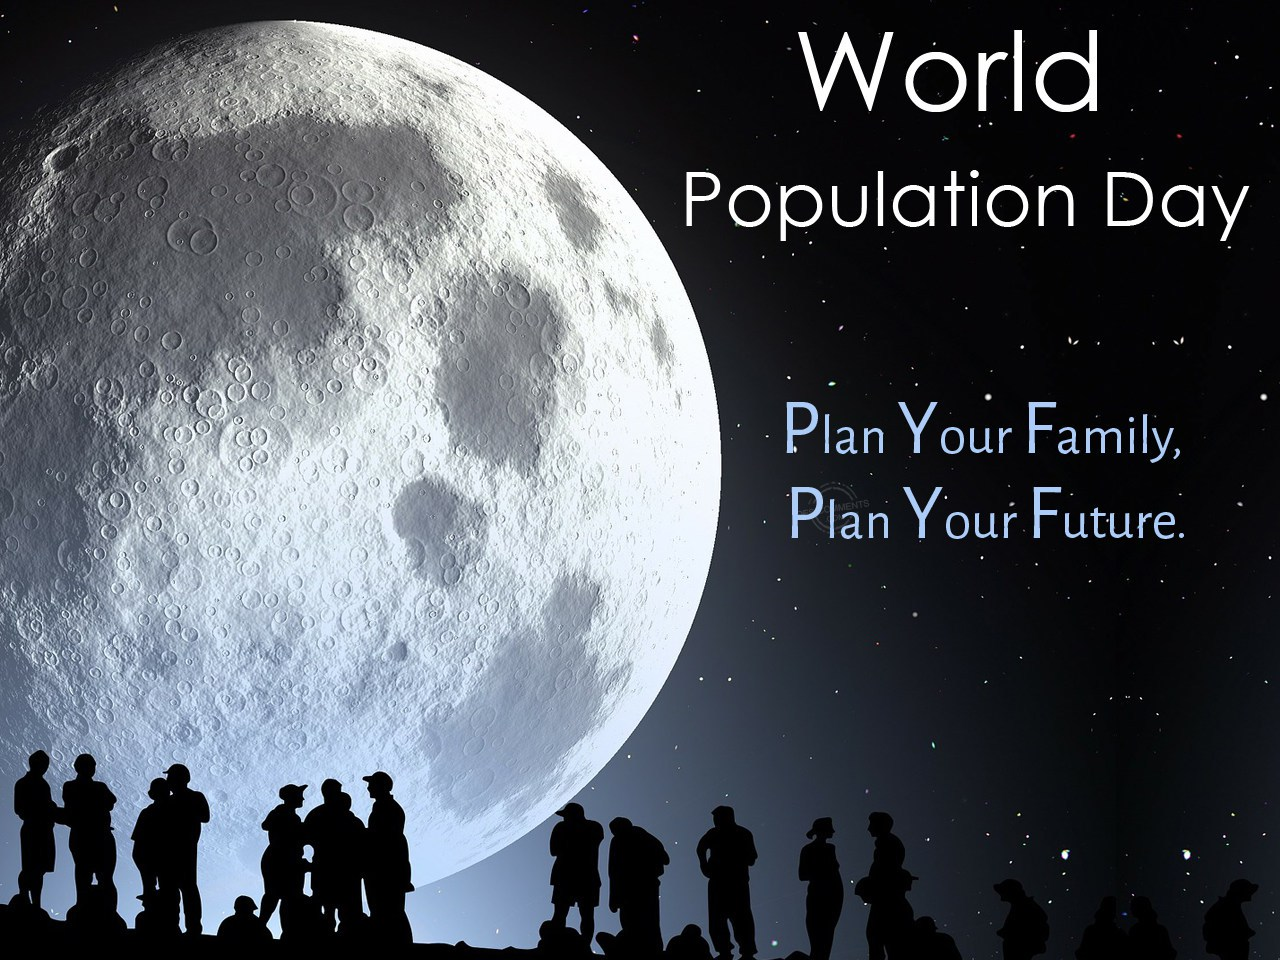 World Population Day, Population Day, The World Population Day, 11 July, July 11, 1987, Five Billion Day, Rise In Population, Population Increase, Increase In Population